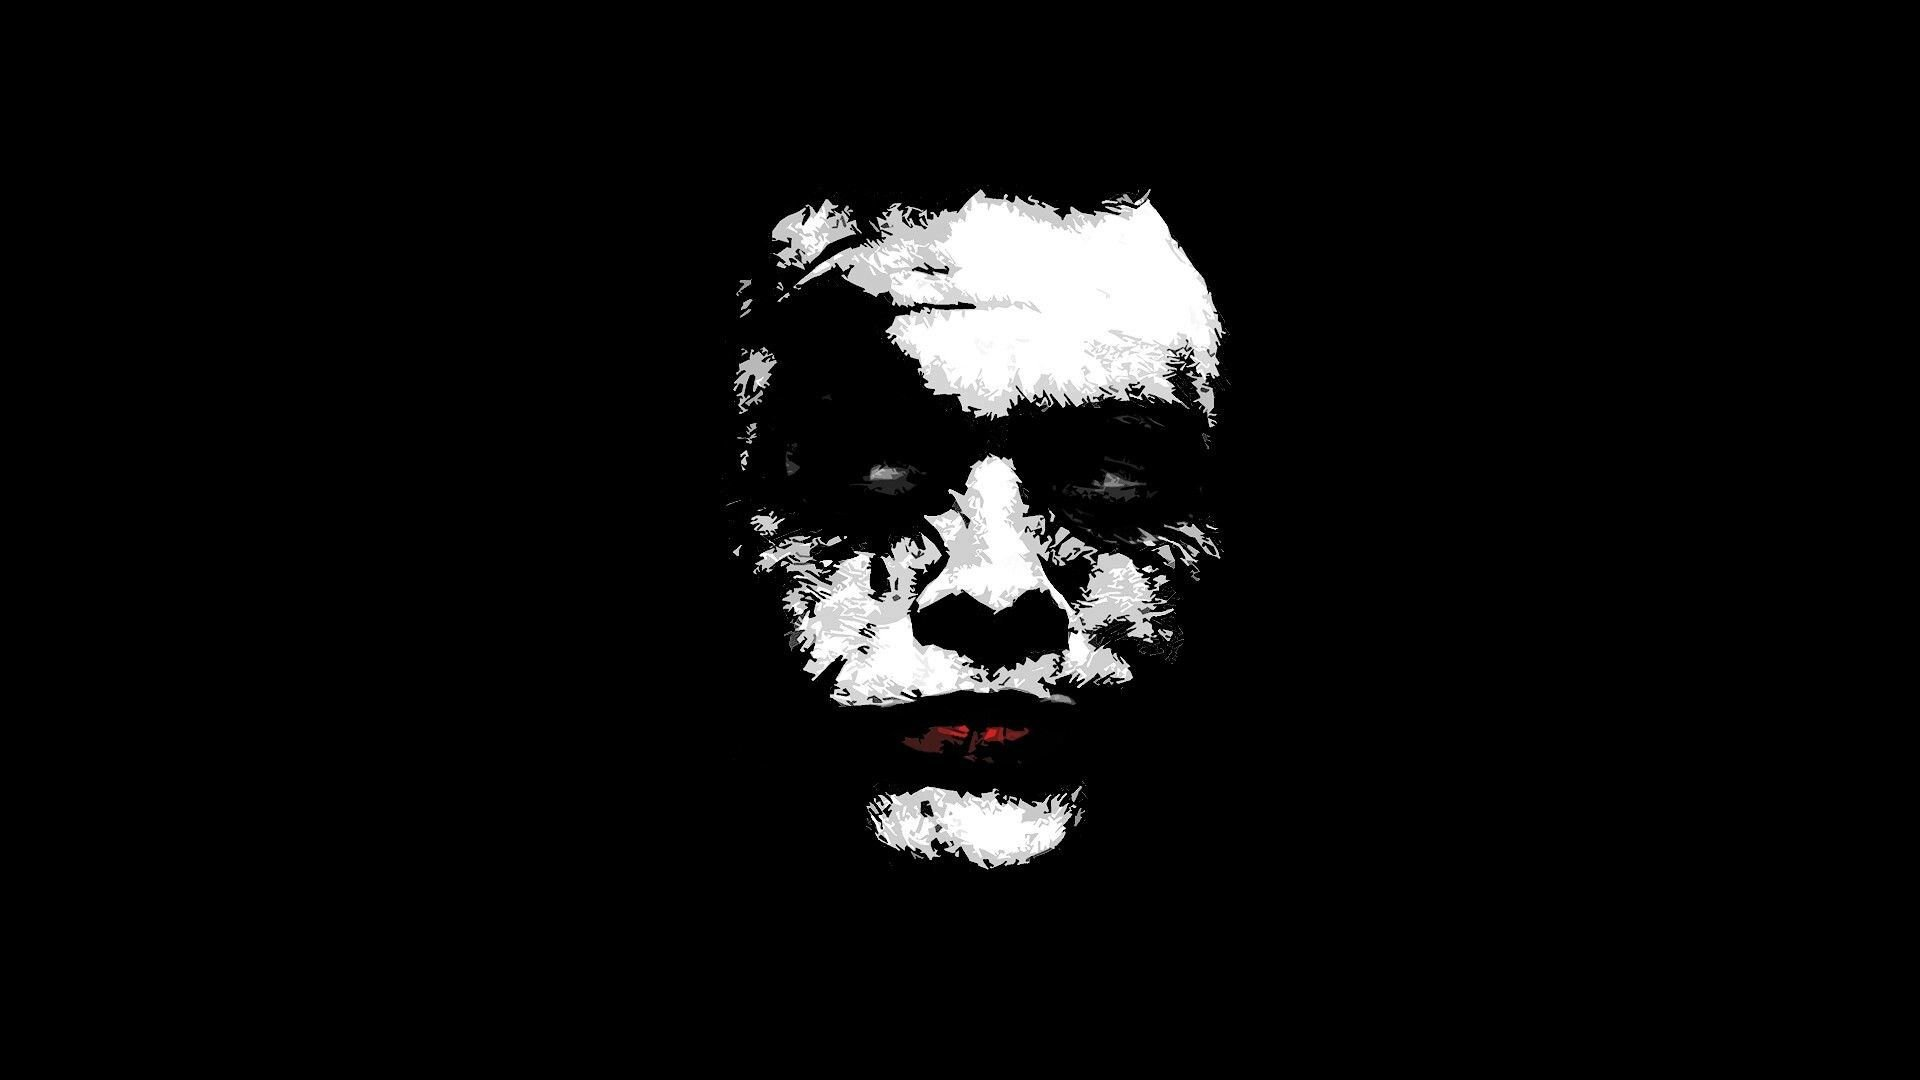 Joker Black And White Wallpapers Top Free Joker Black And White Backgrounds Wallpaperaccess